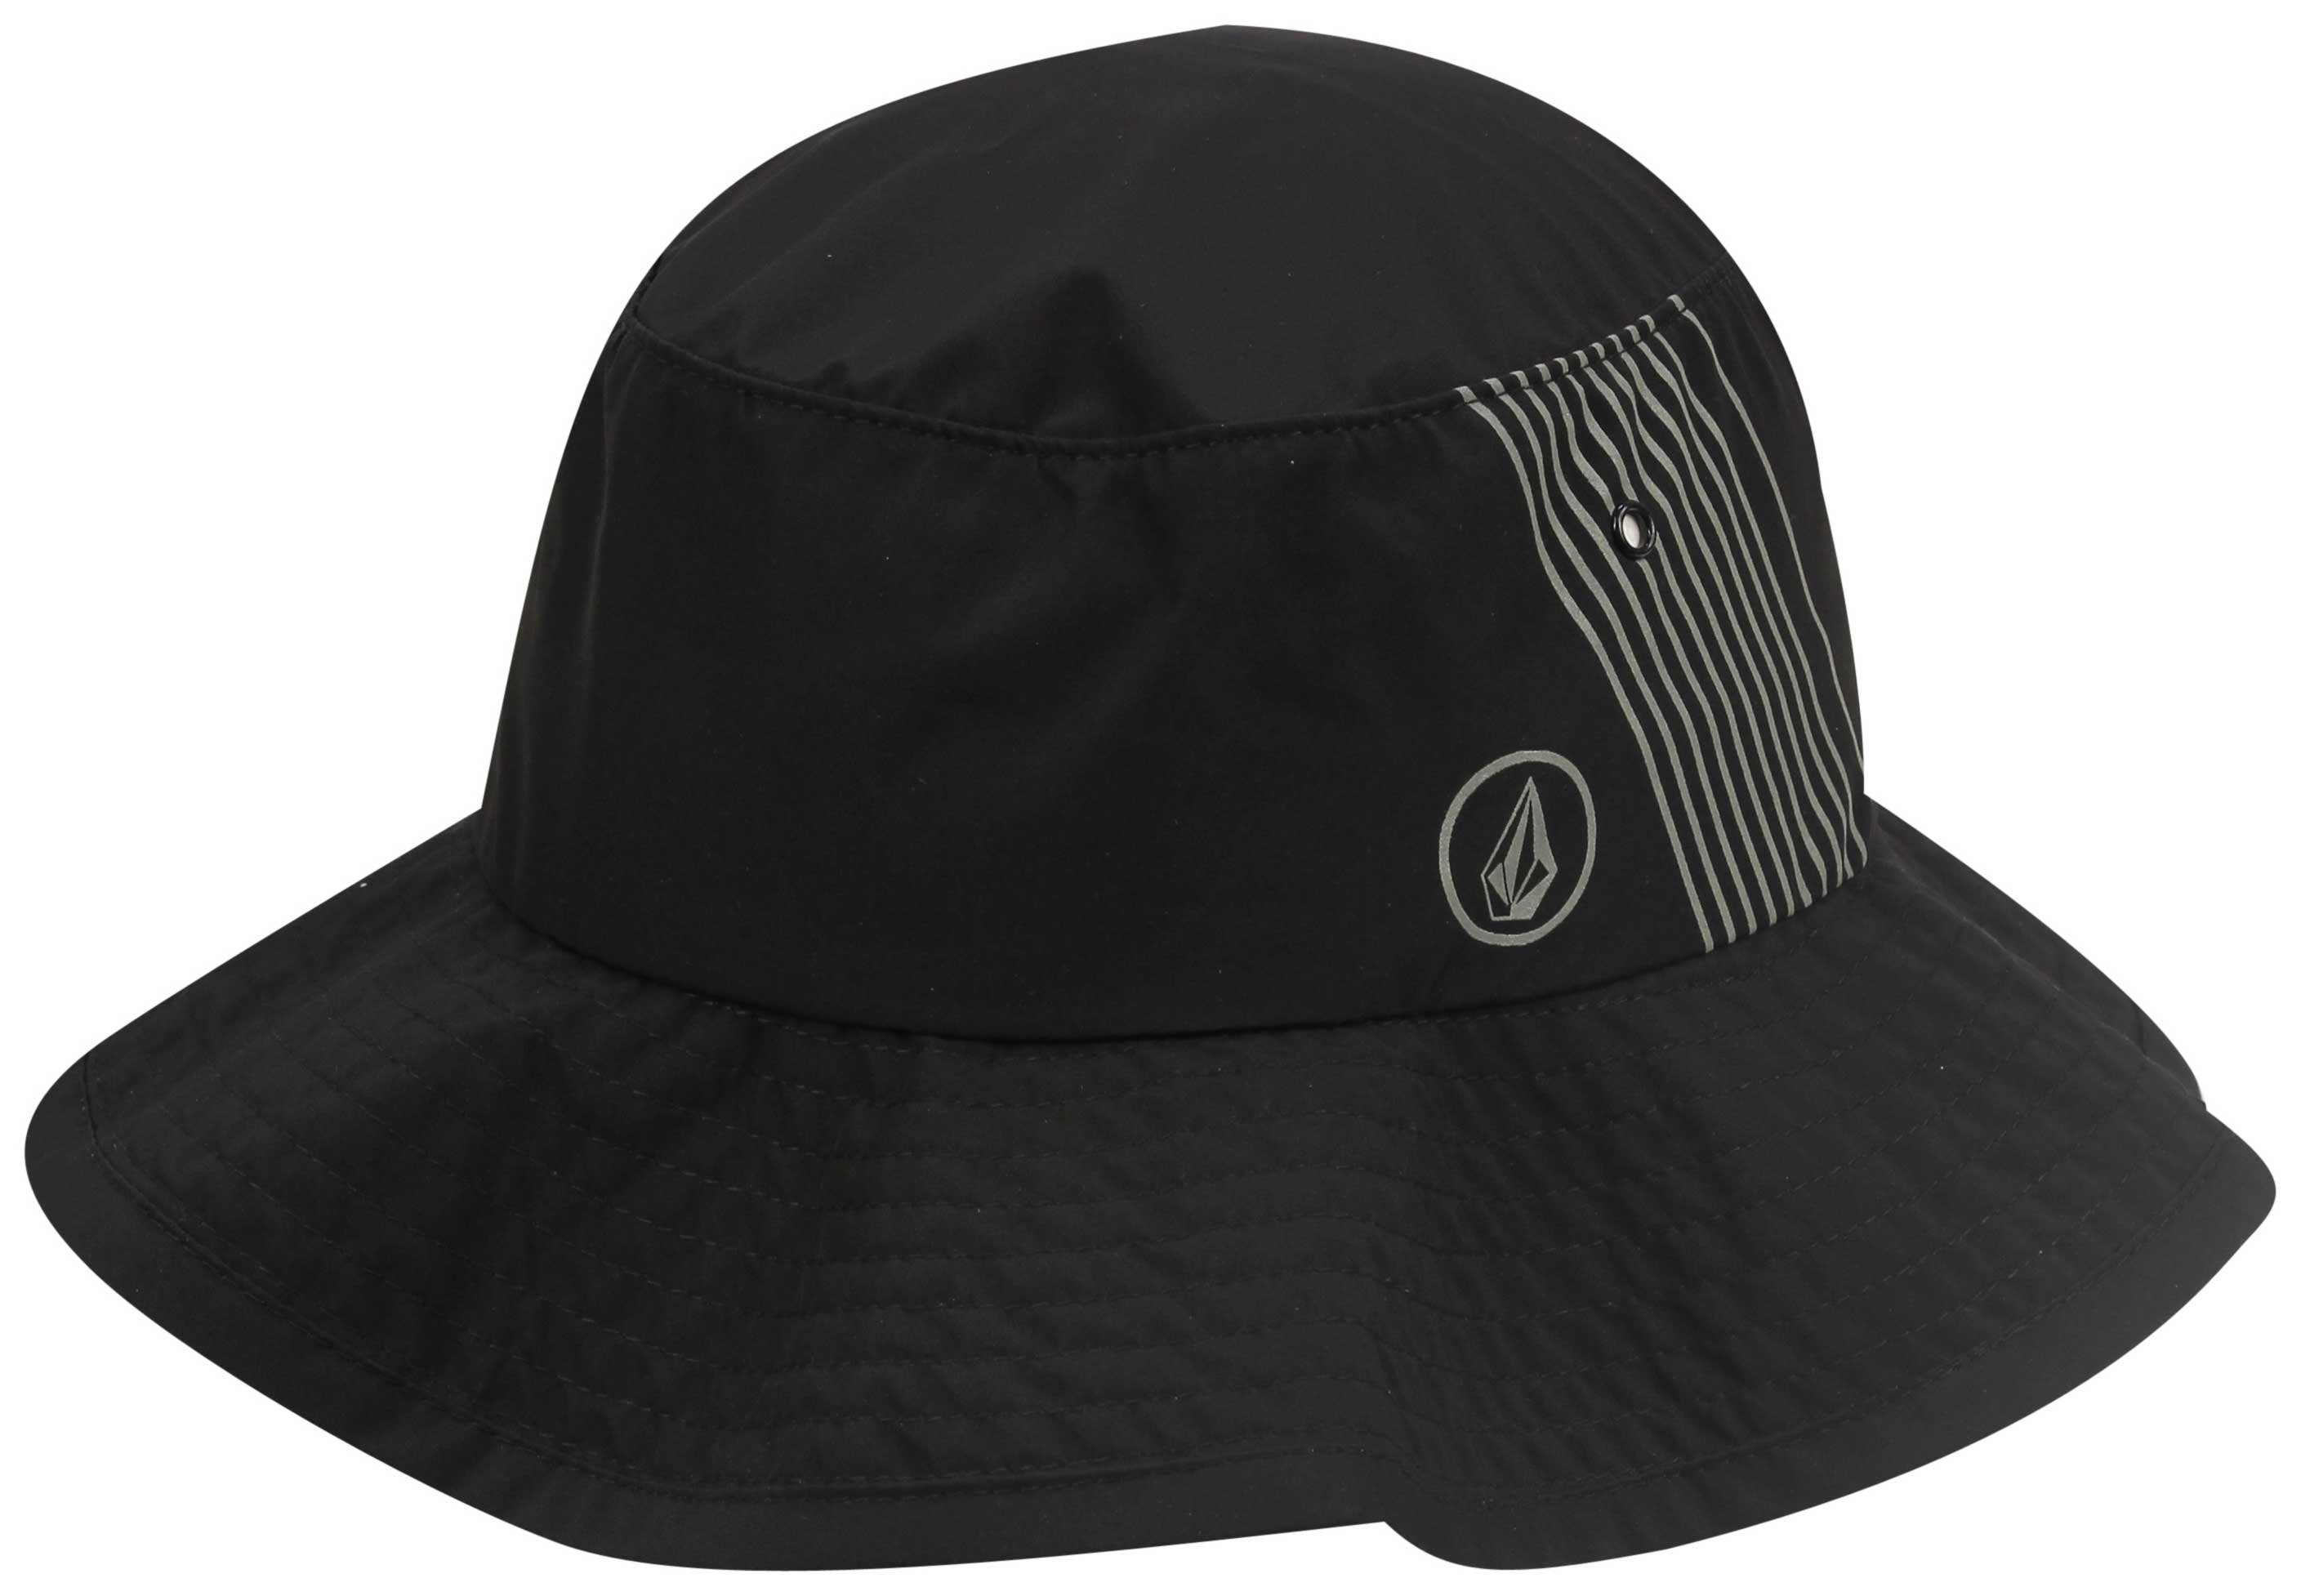 Volcom Mod Tech Bucket Hat Black For Sale At Surfboards